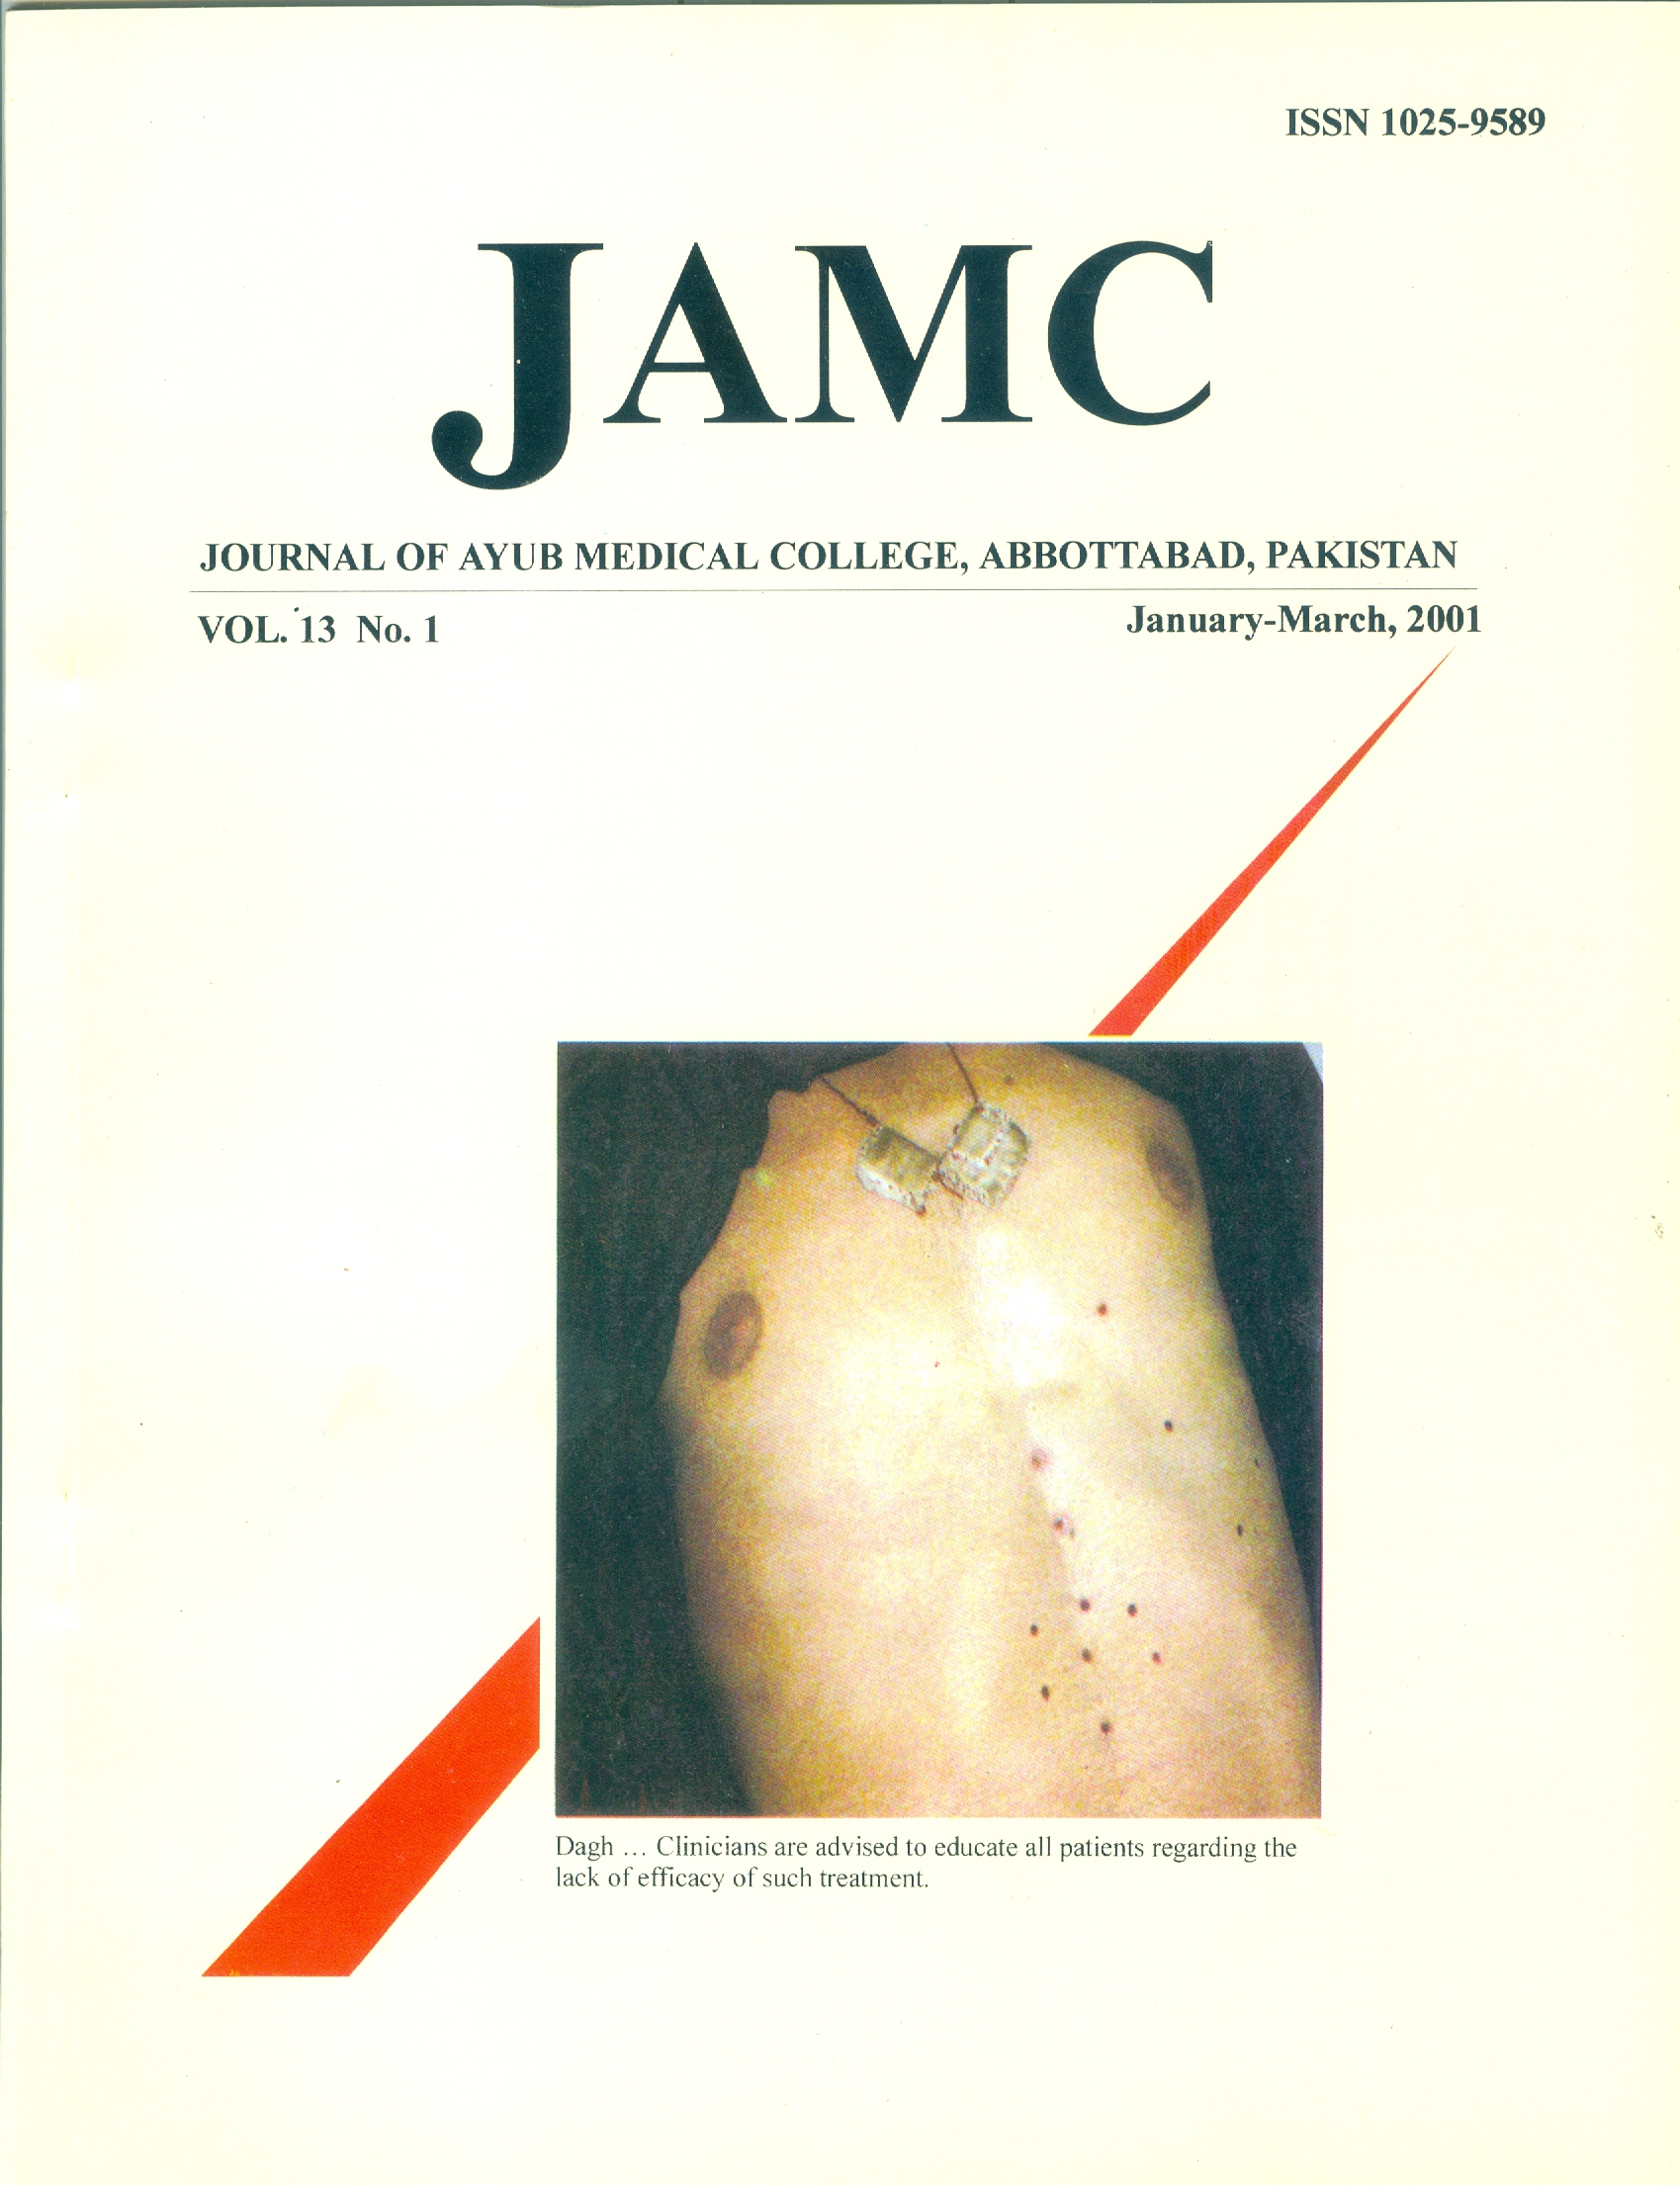 View Vol. 13 No. 1 (2001): JOURNAL OF AYUB MEDICAL COLLEGE, ABBOTTABAD